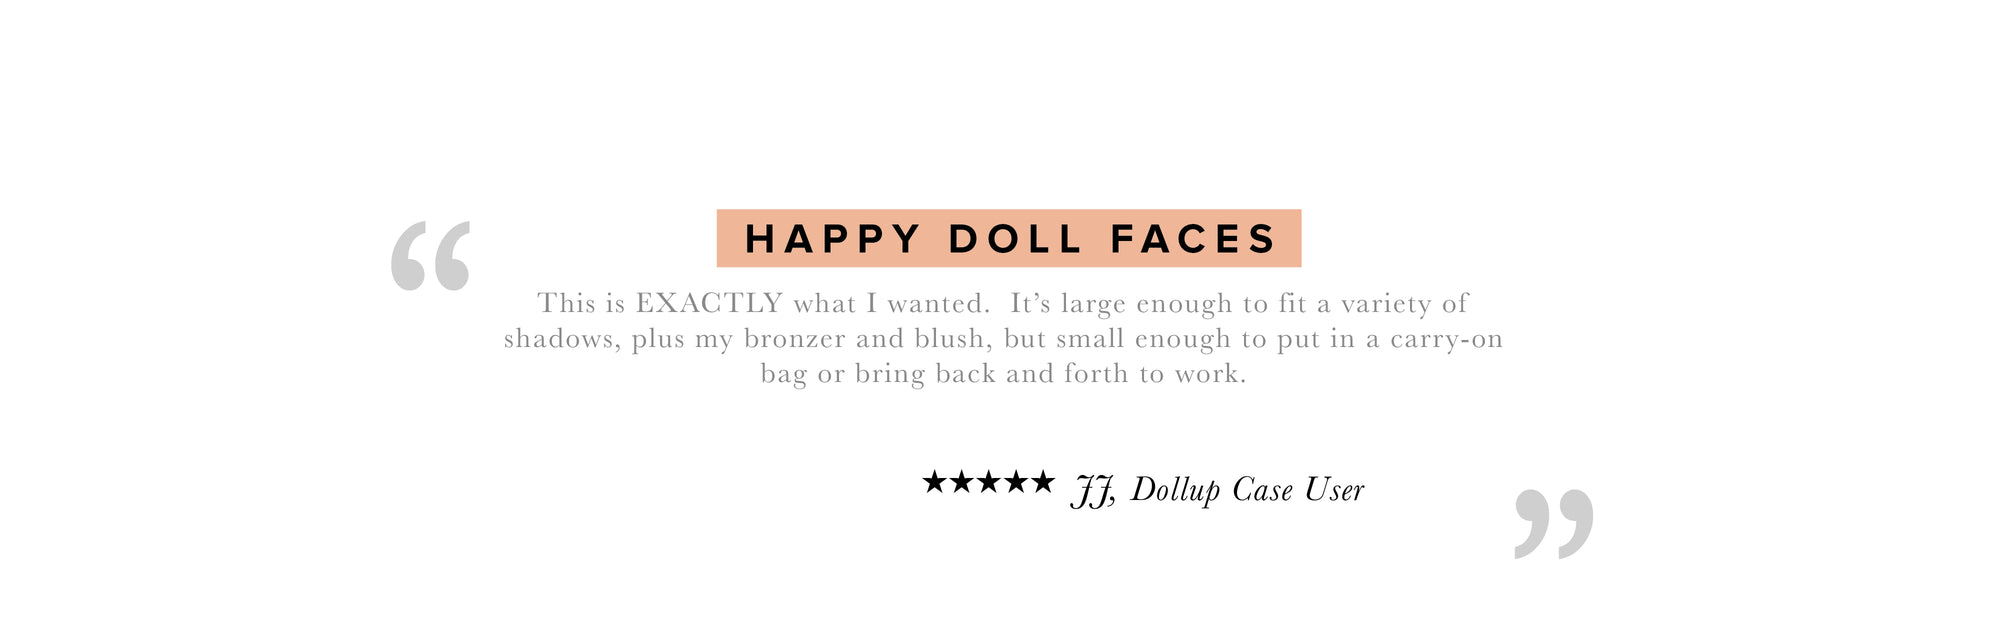 Happy Doll Beauty faces review all natural products